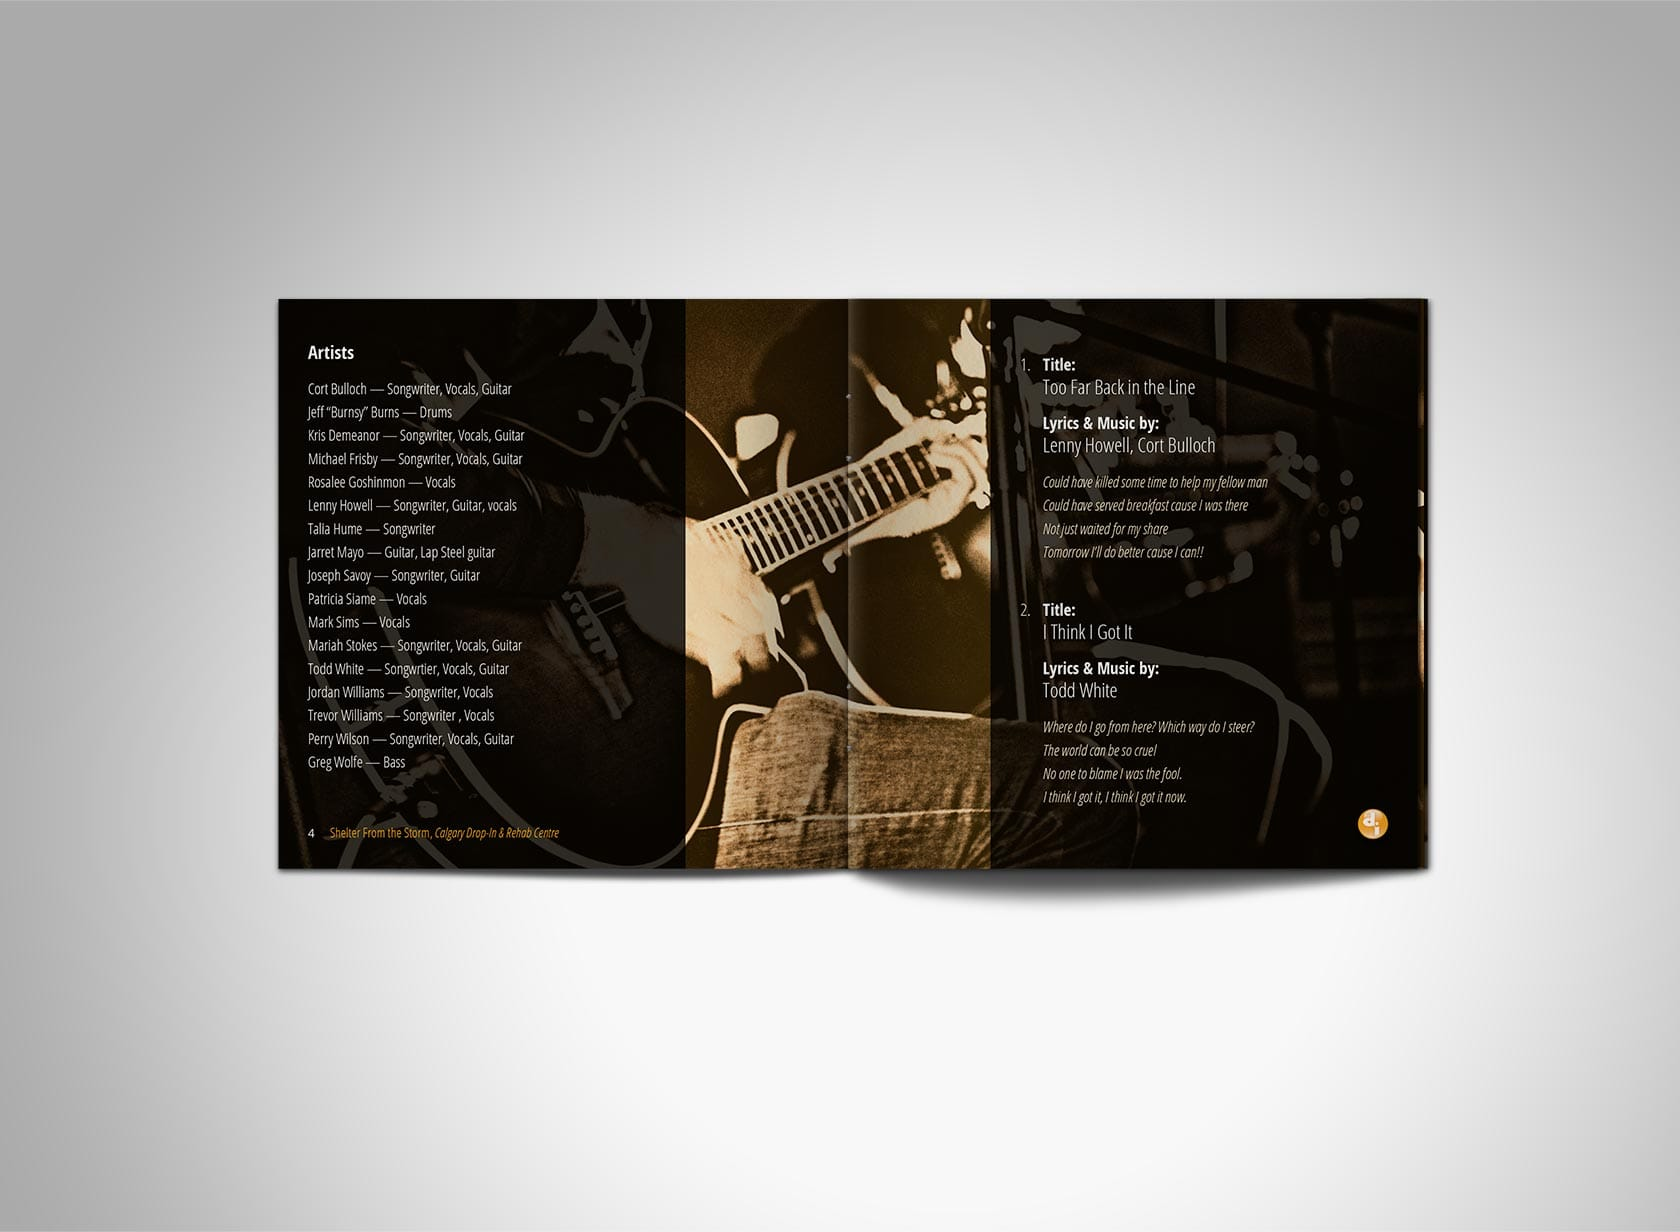 SFTS CD Project Image 01 - Event Program Design, CD Case - CD Booklet, Inner Spread Pages 4/5